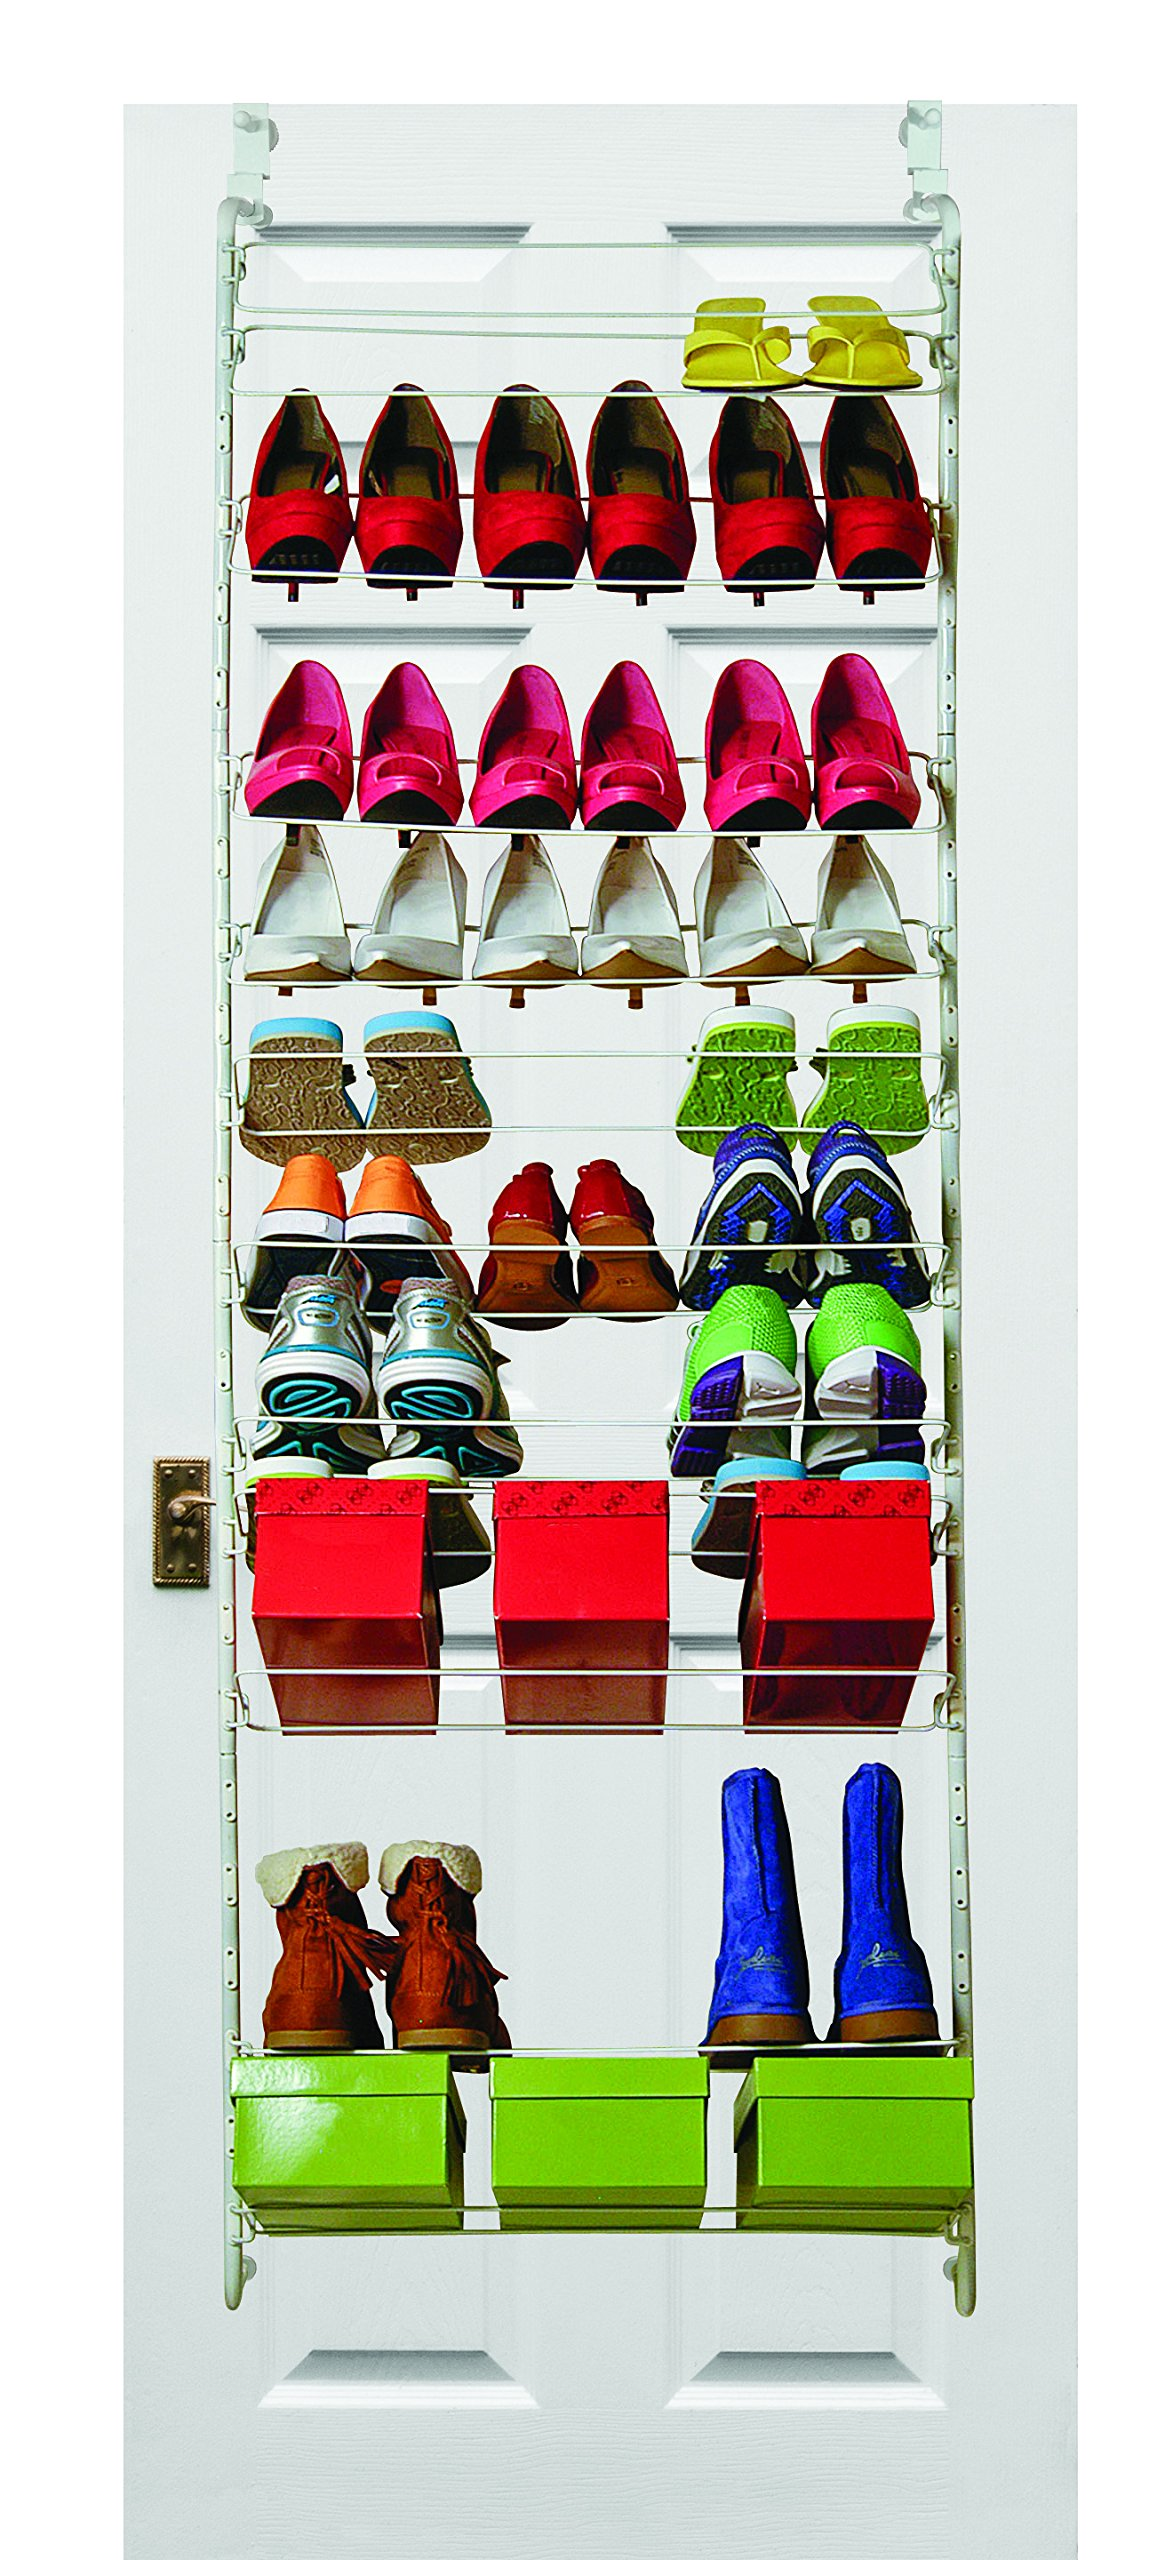 MAX SPACE Customizable Over Door Shoe Rack w/Screw Tight Over Door Hooks - 36 pr - Version 2.0 - August 2016 by MAX SPACE